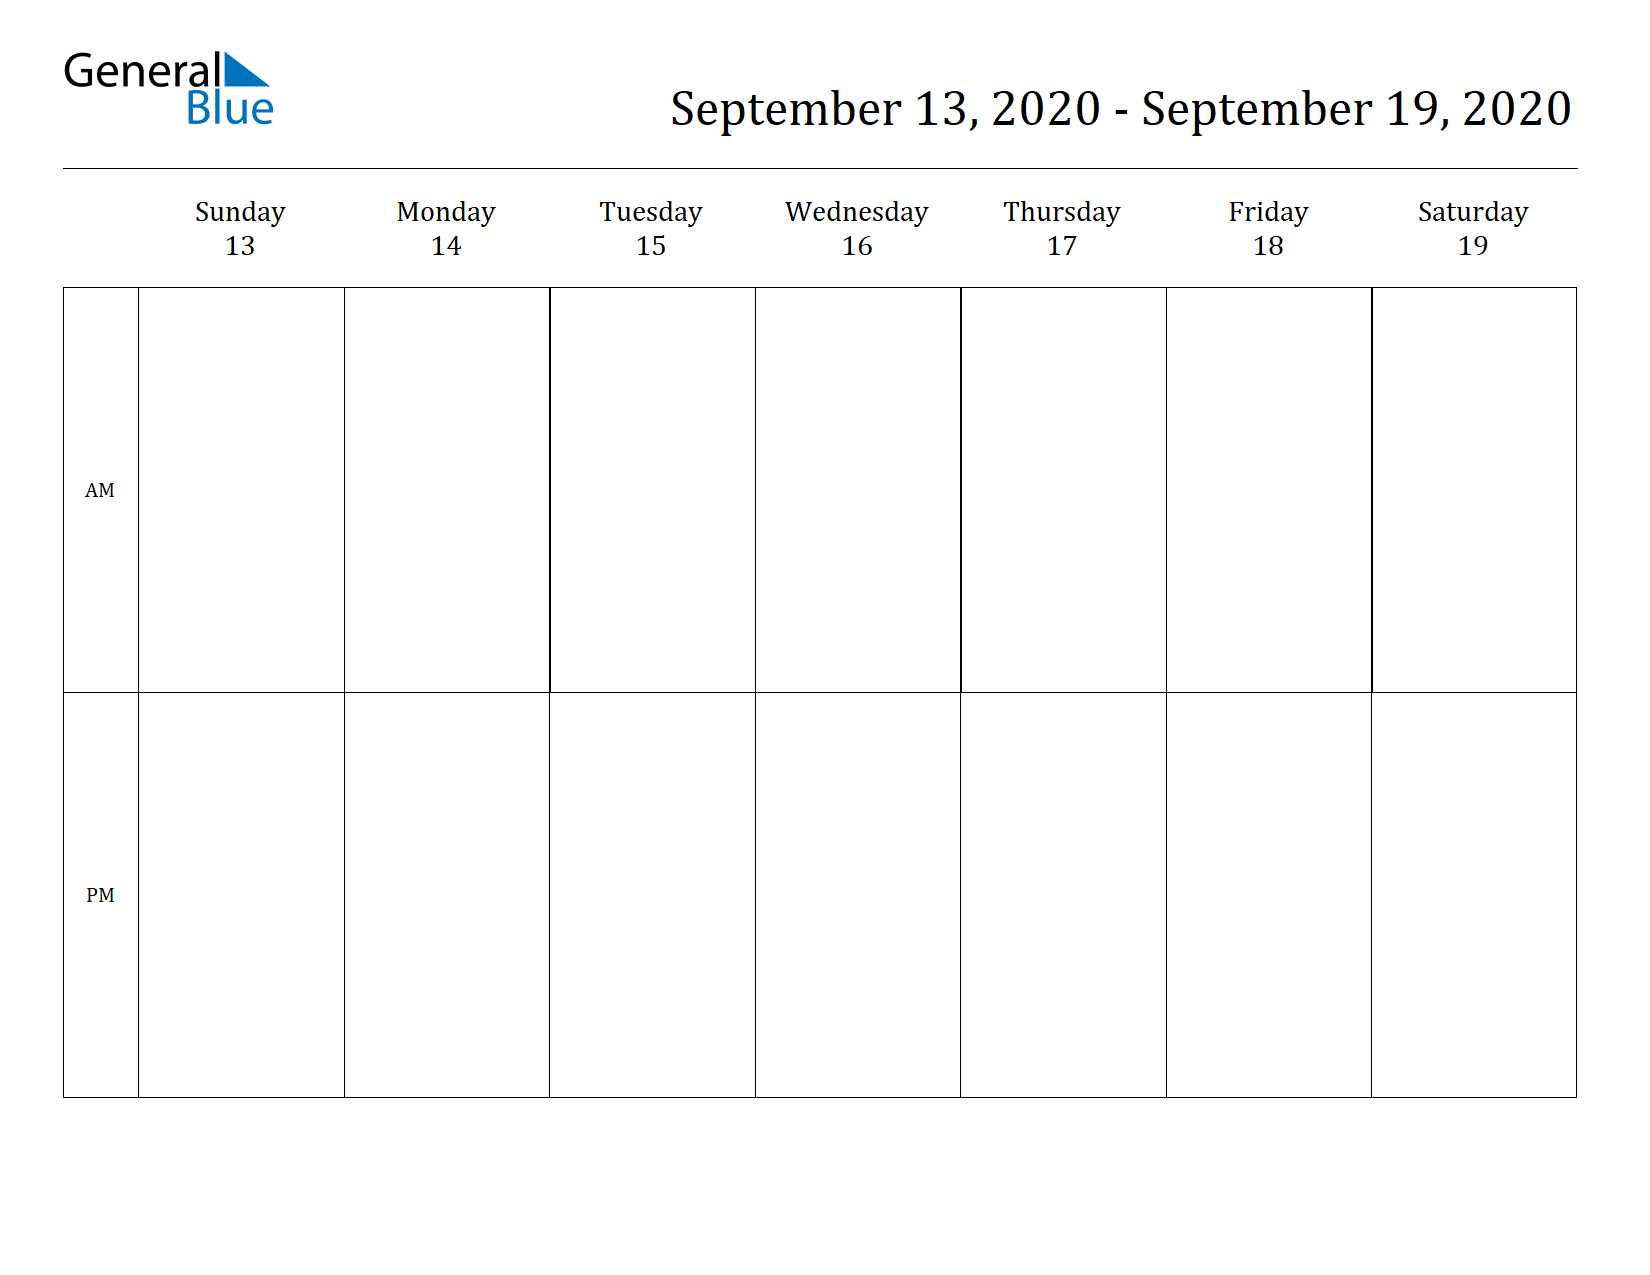 Weekly Calendar for Sep 13, 2020 to Sep 19, 2020